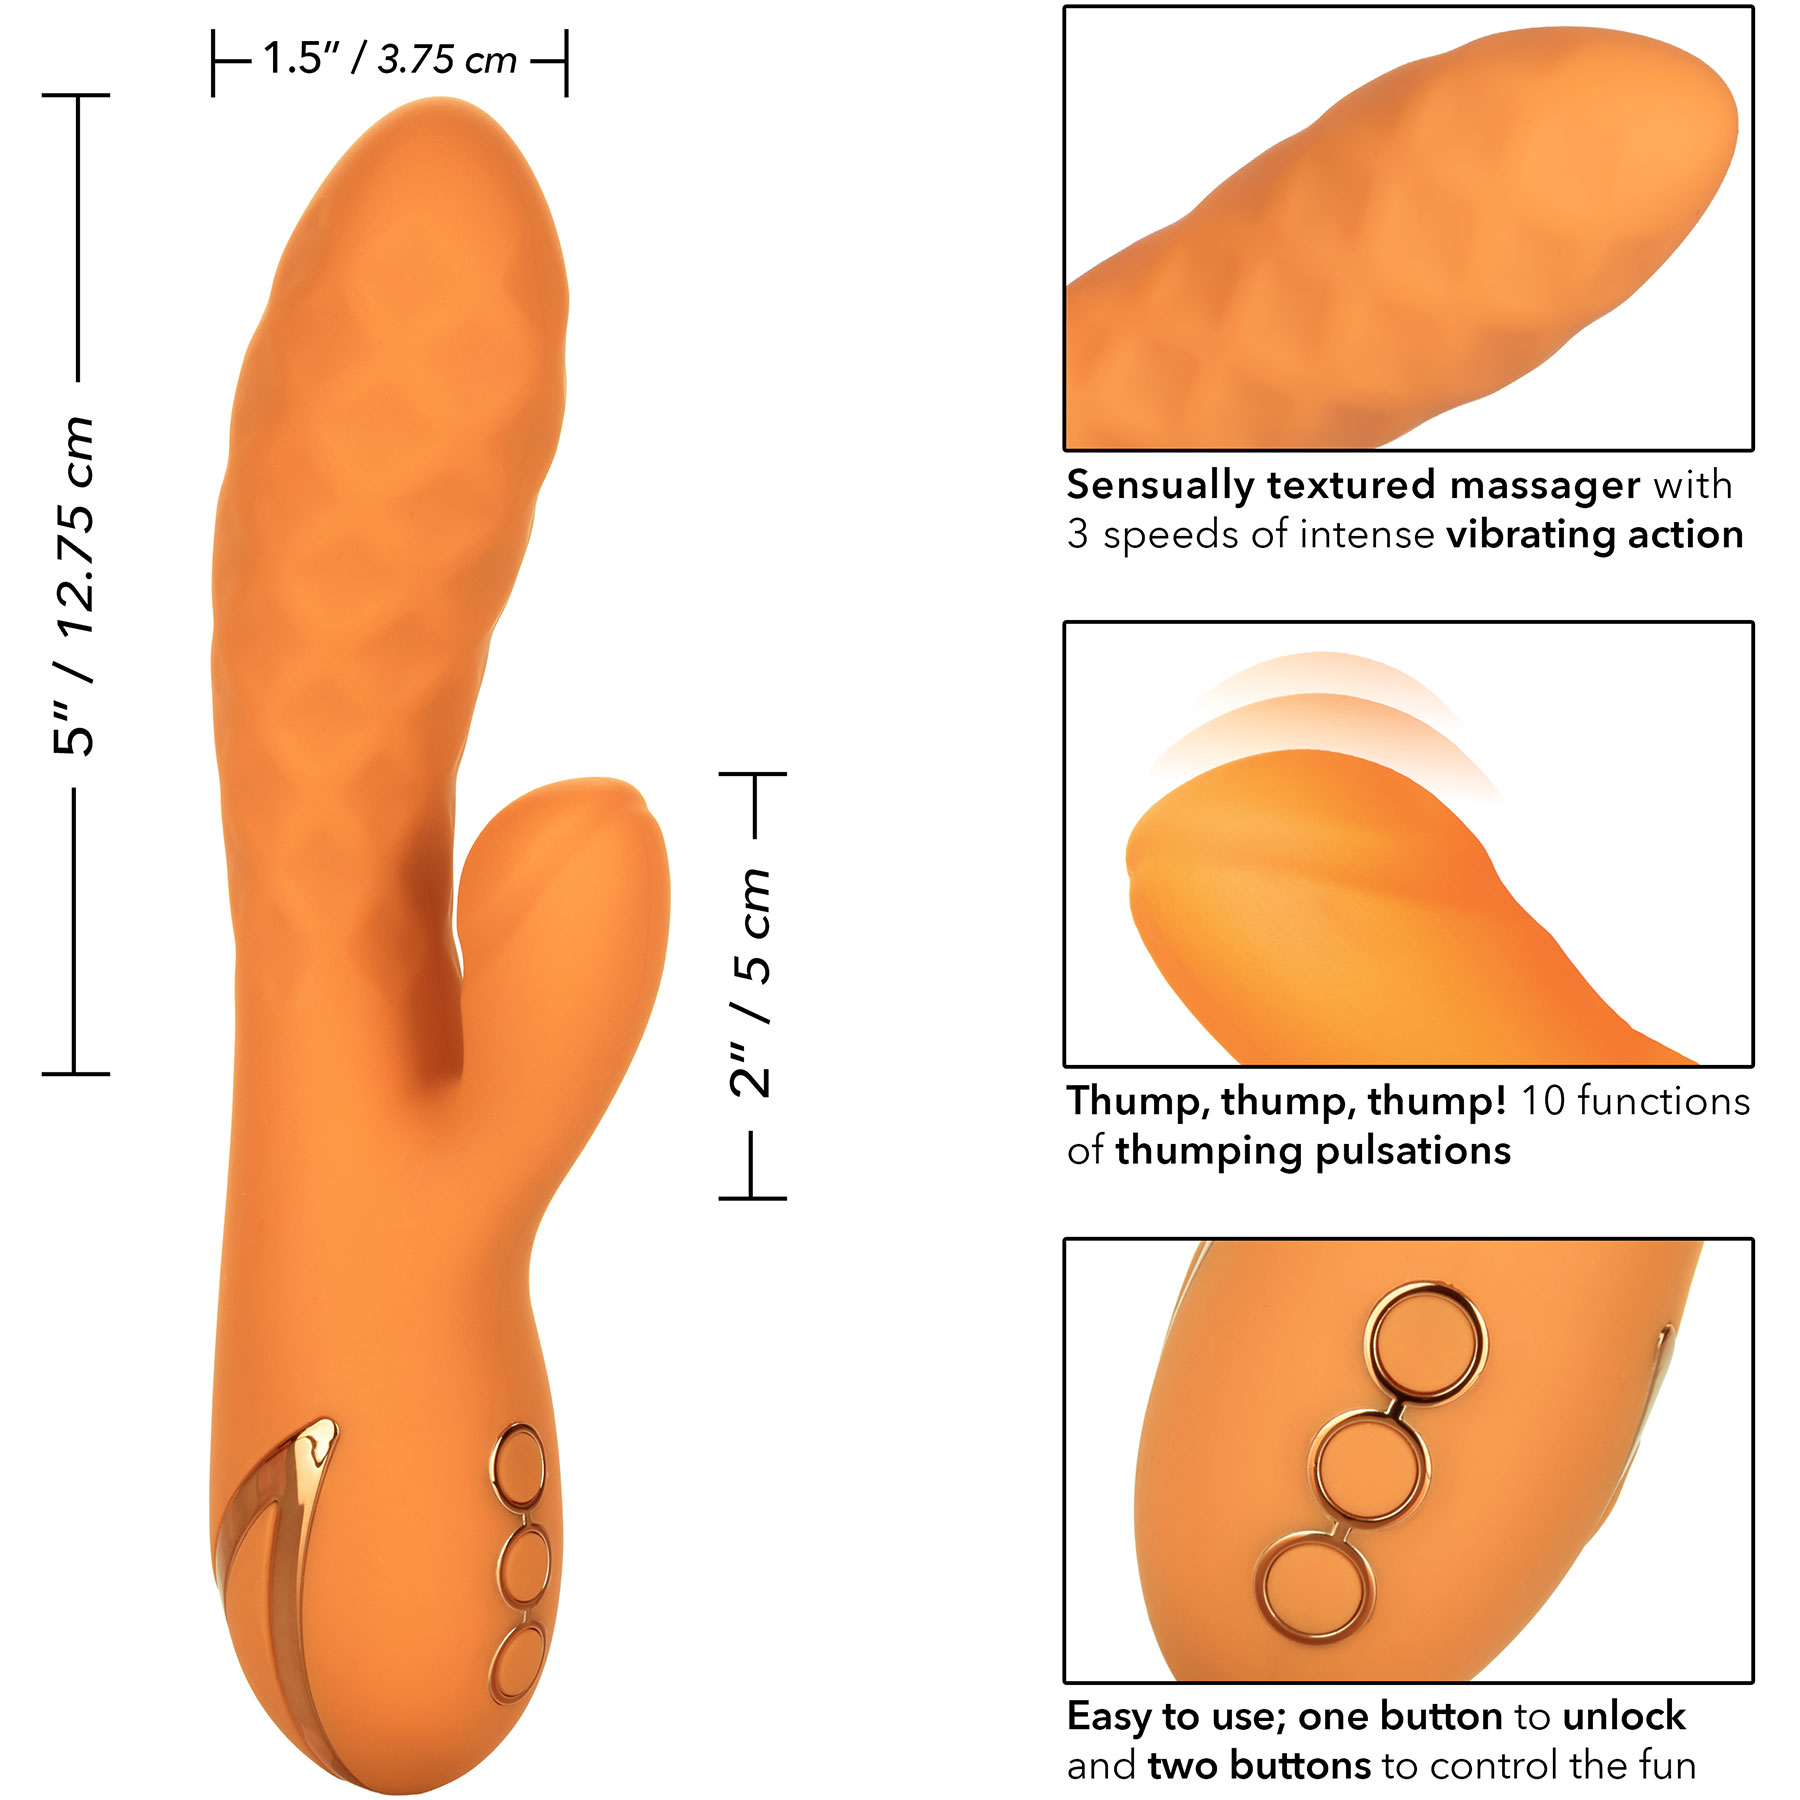 California Dreaming Newport Beach Babe Rabbit Style Silicone Vibrator - Measurements